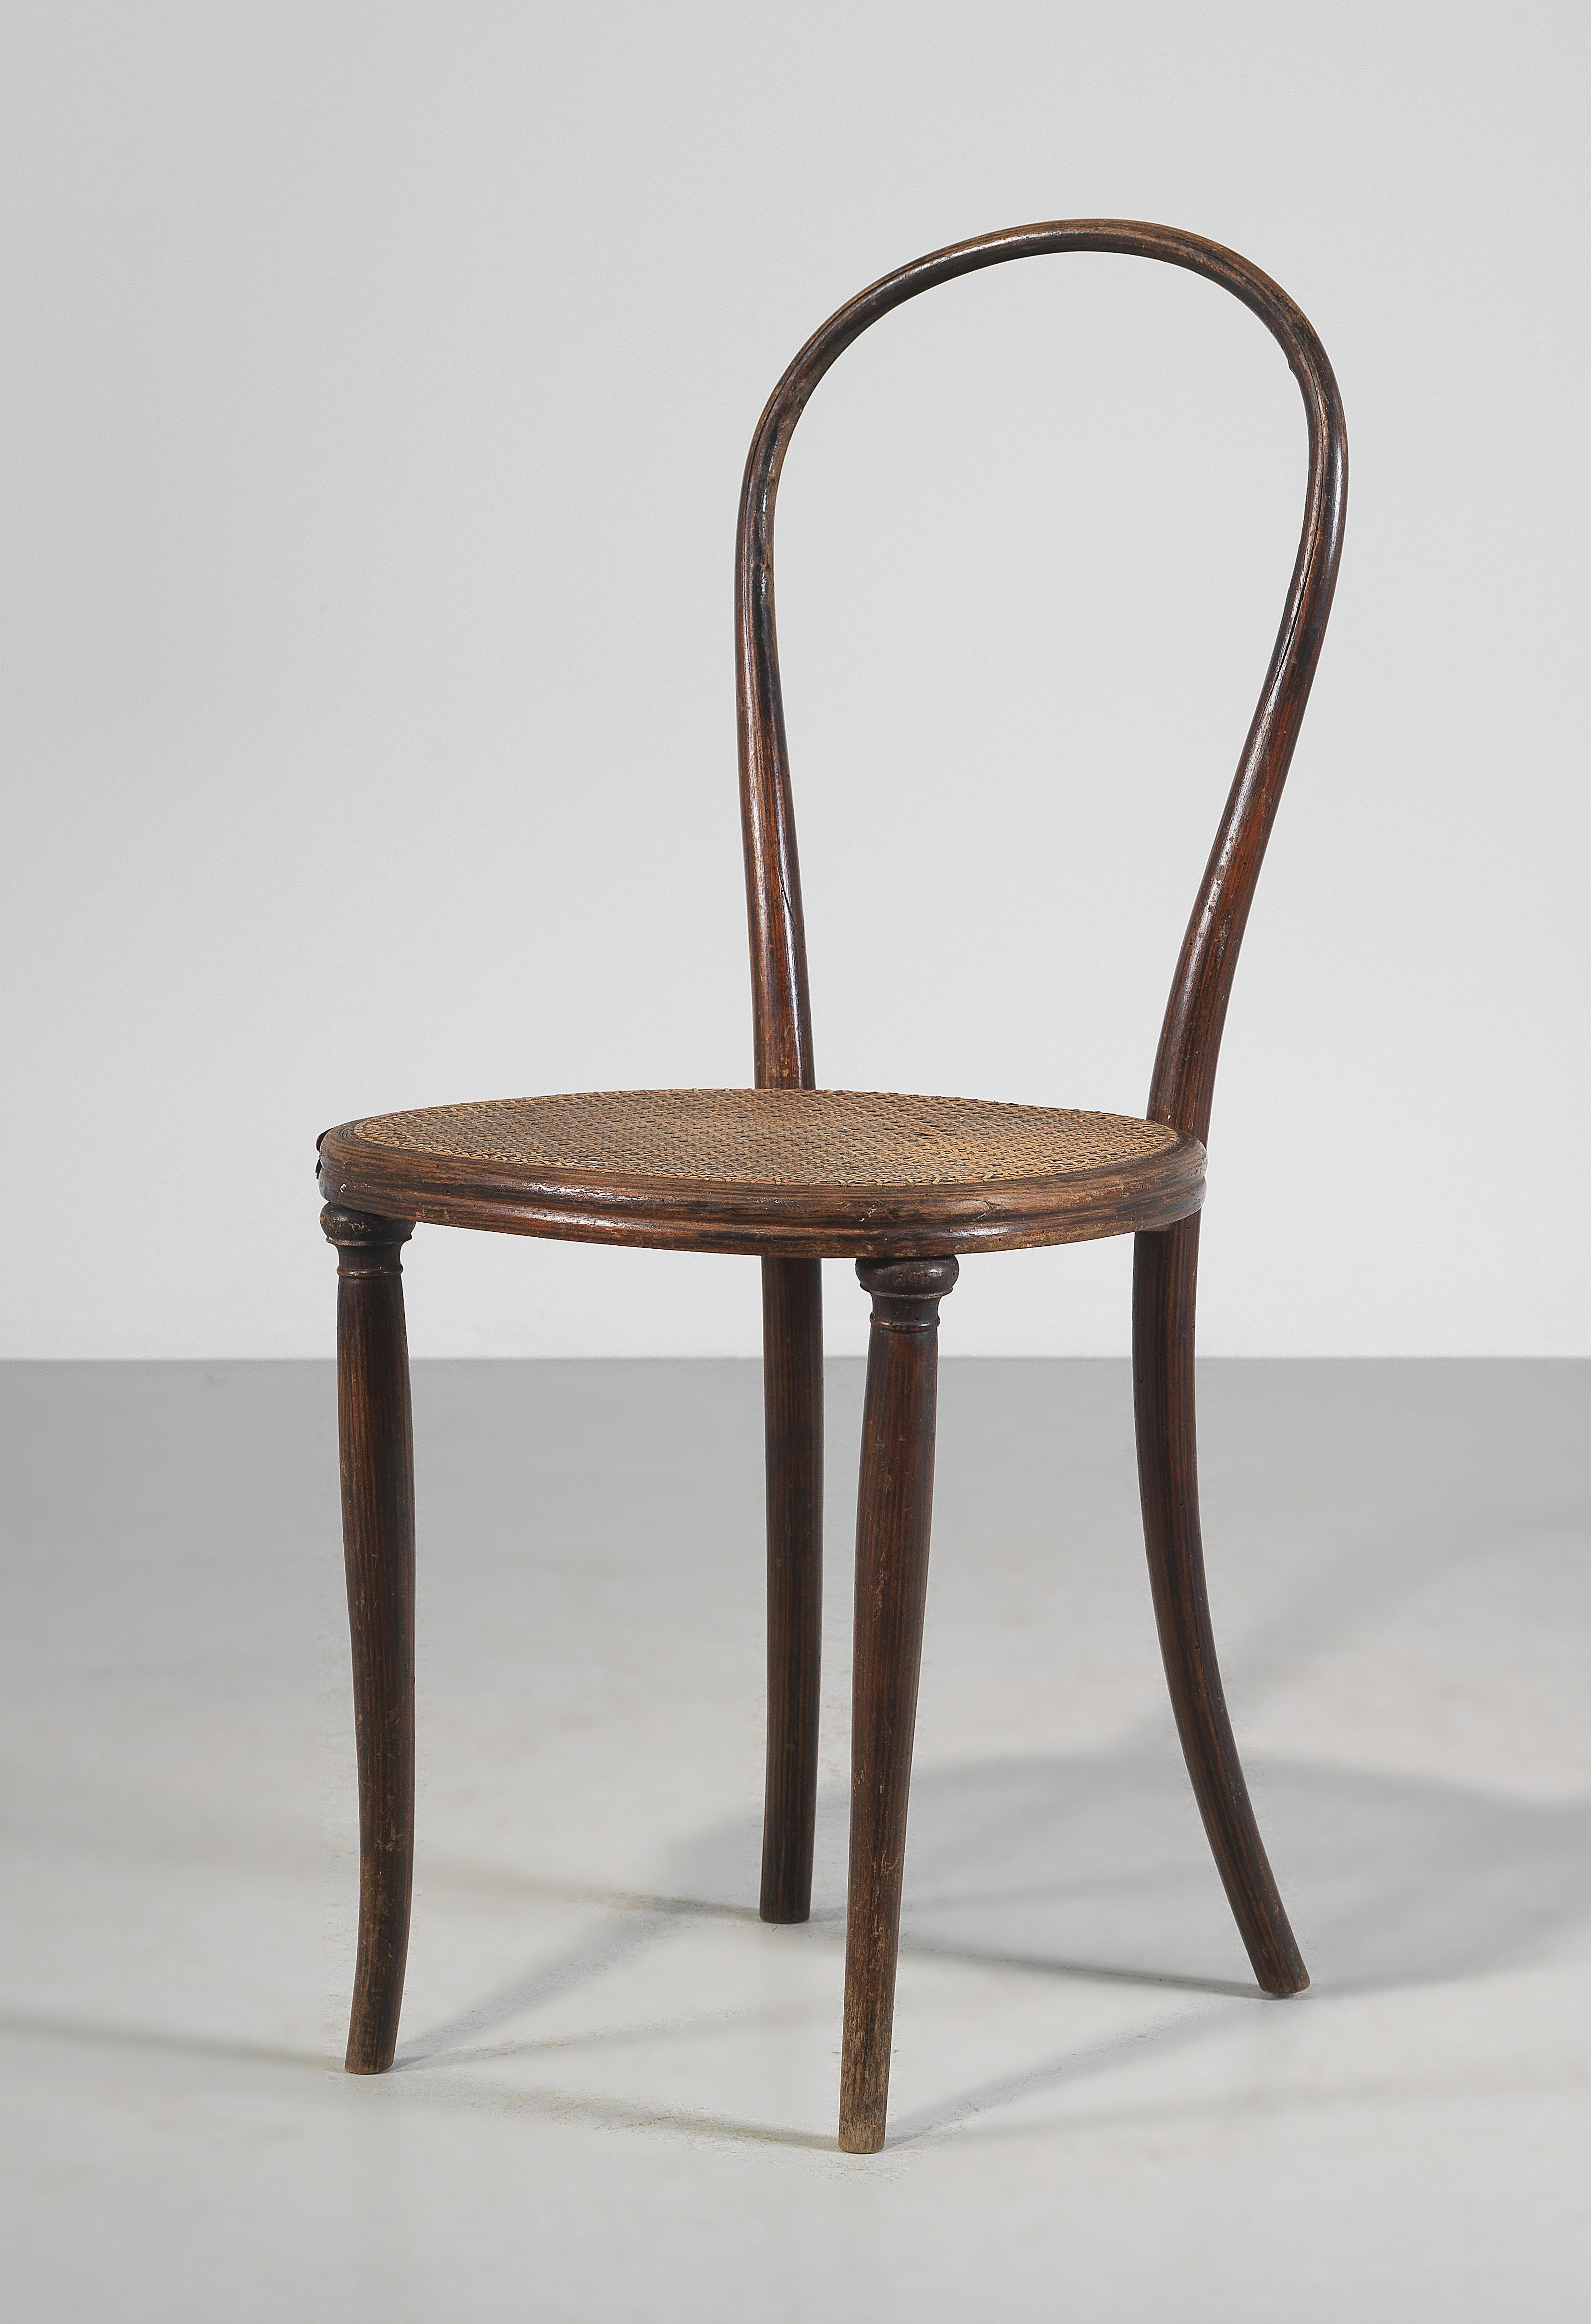 Thonet Michael An Early Variant Of Chair Mod No 14 Designed By Michael